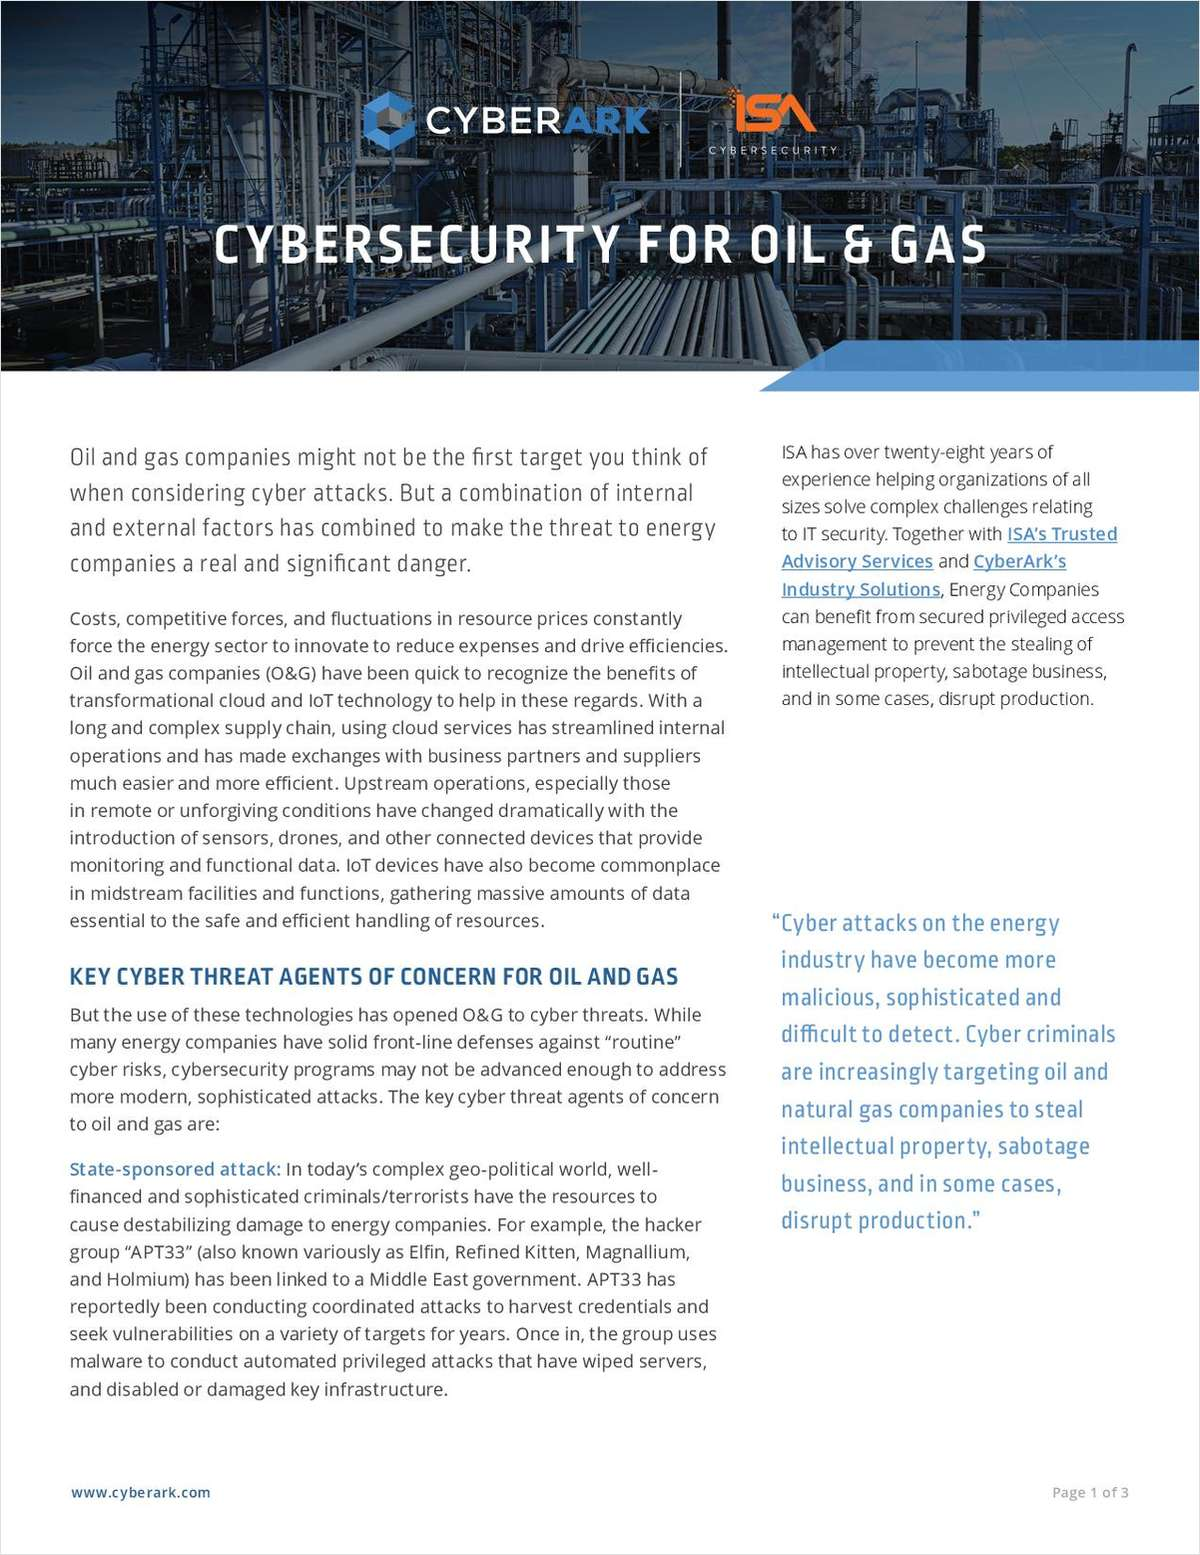 Cybersecurity for Oil & Gas